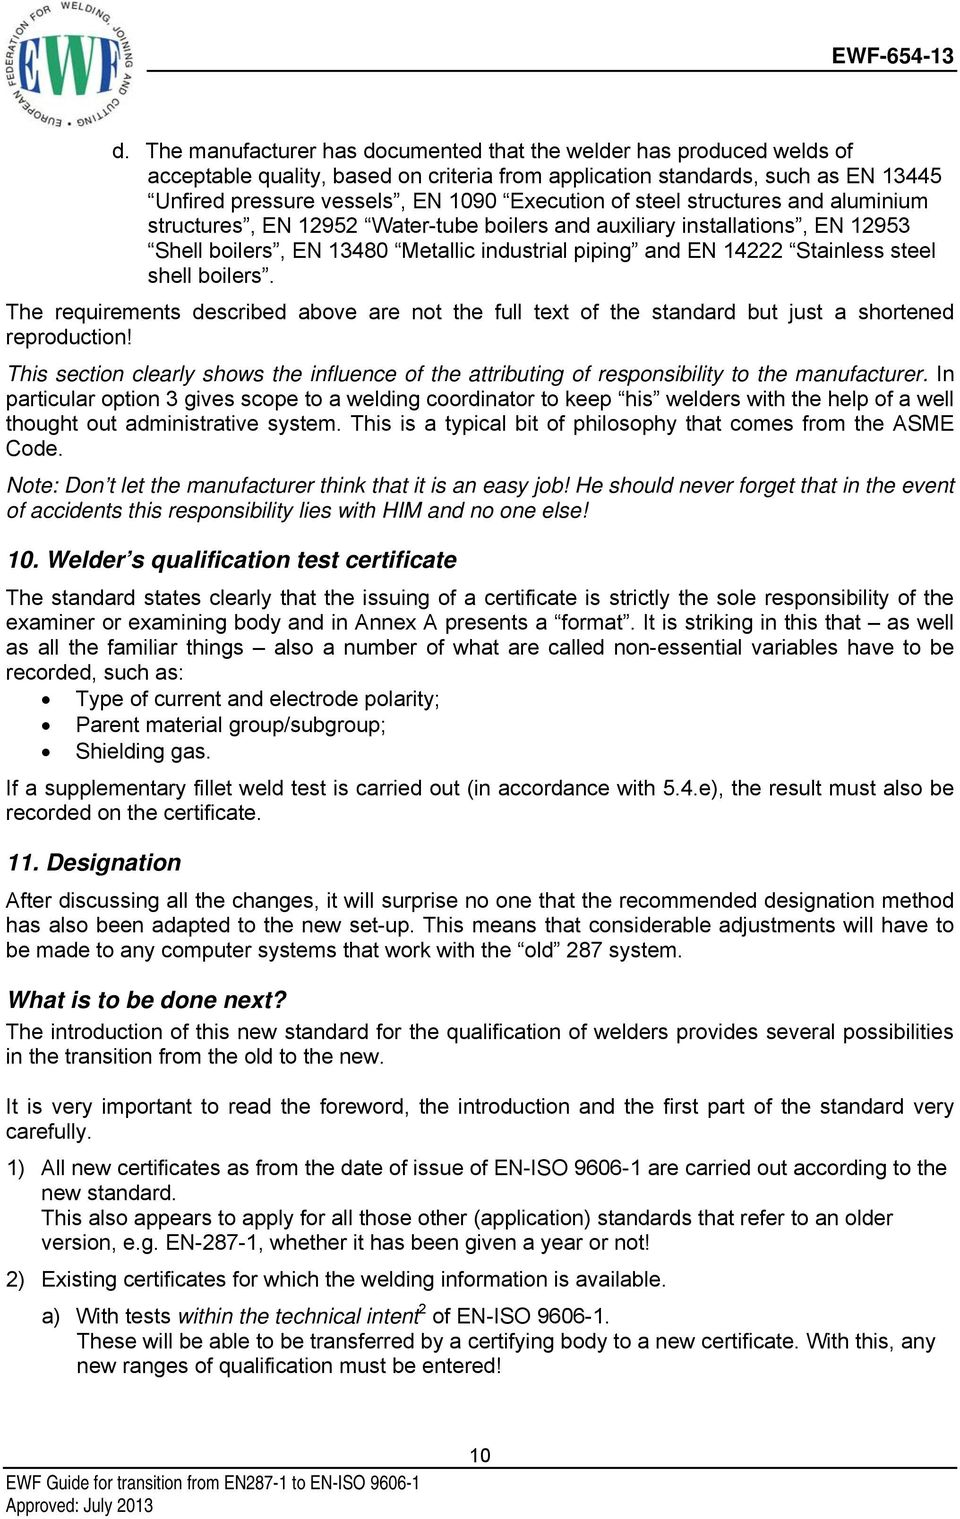 boilers. The requirements described above are not the full text of the standard but just a shortened reproduction!